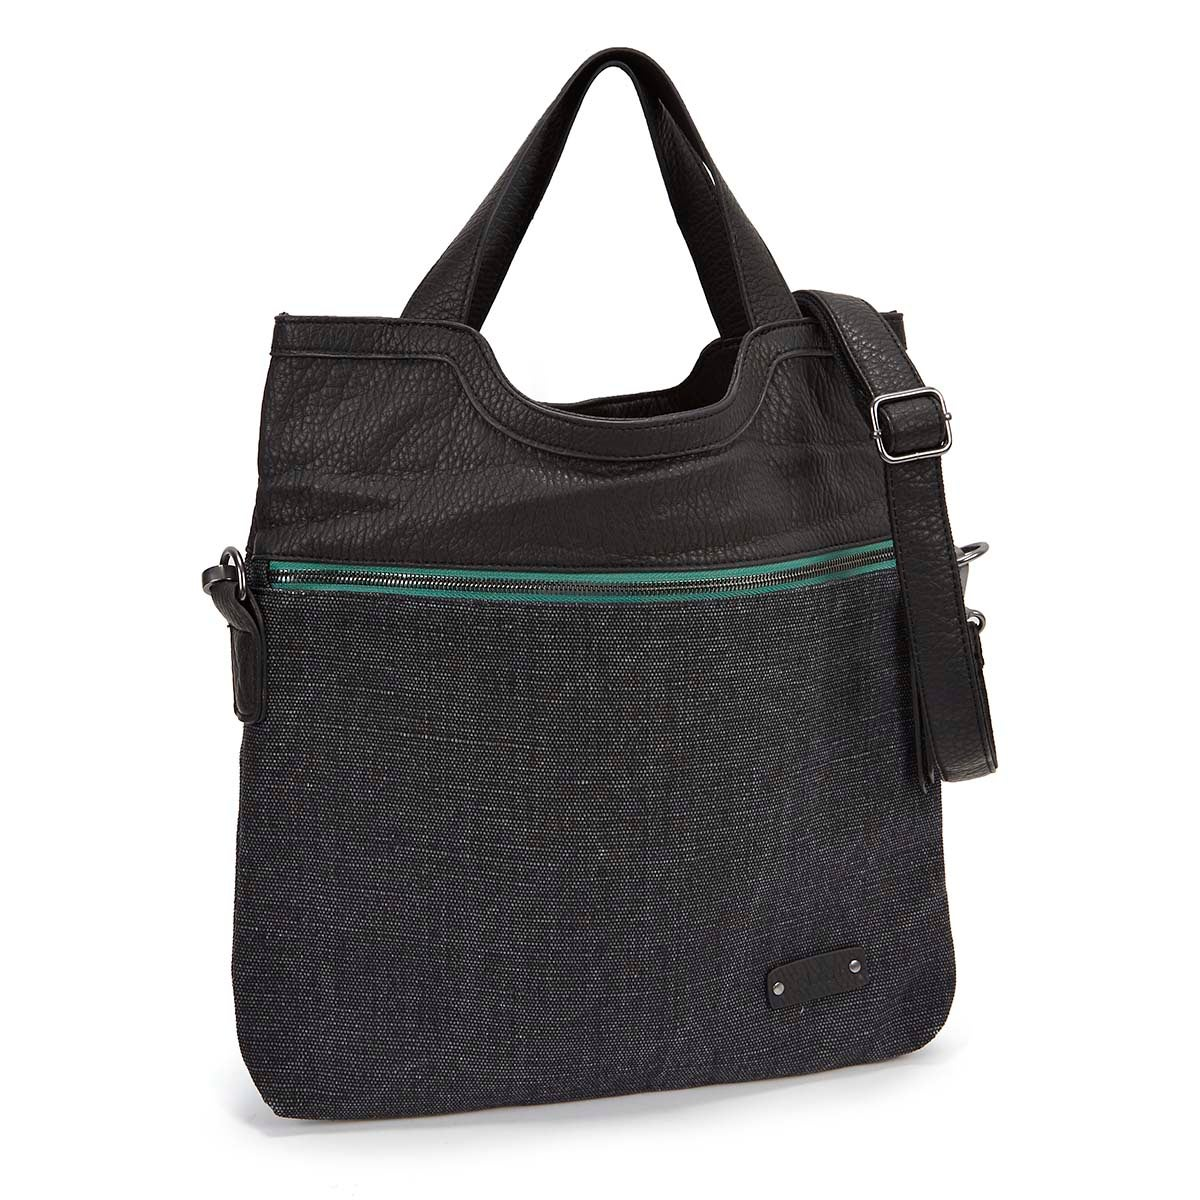 Lds Call Me raven fold-over tote